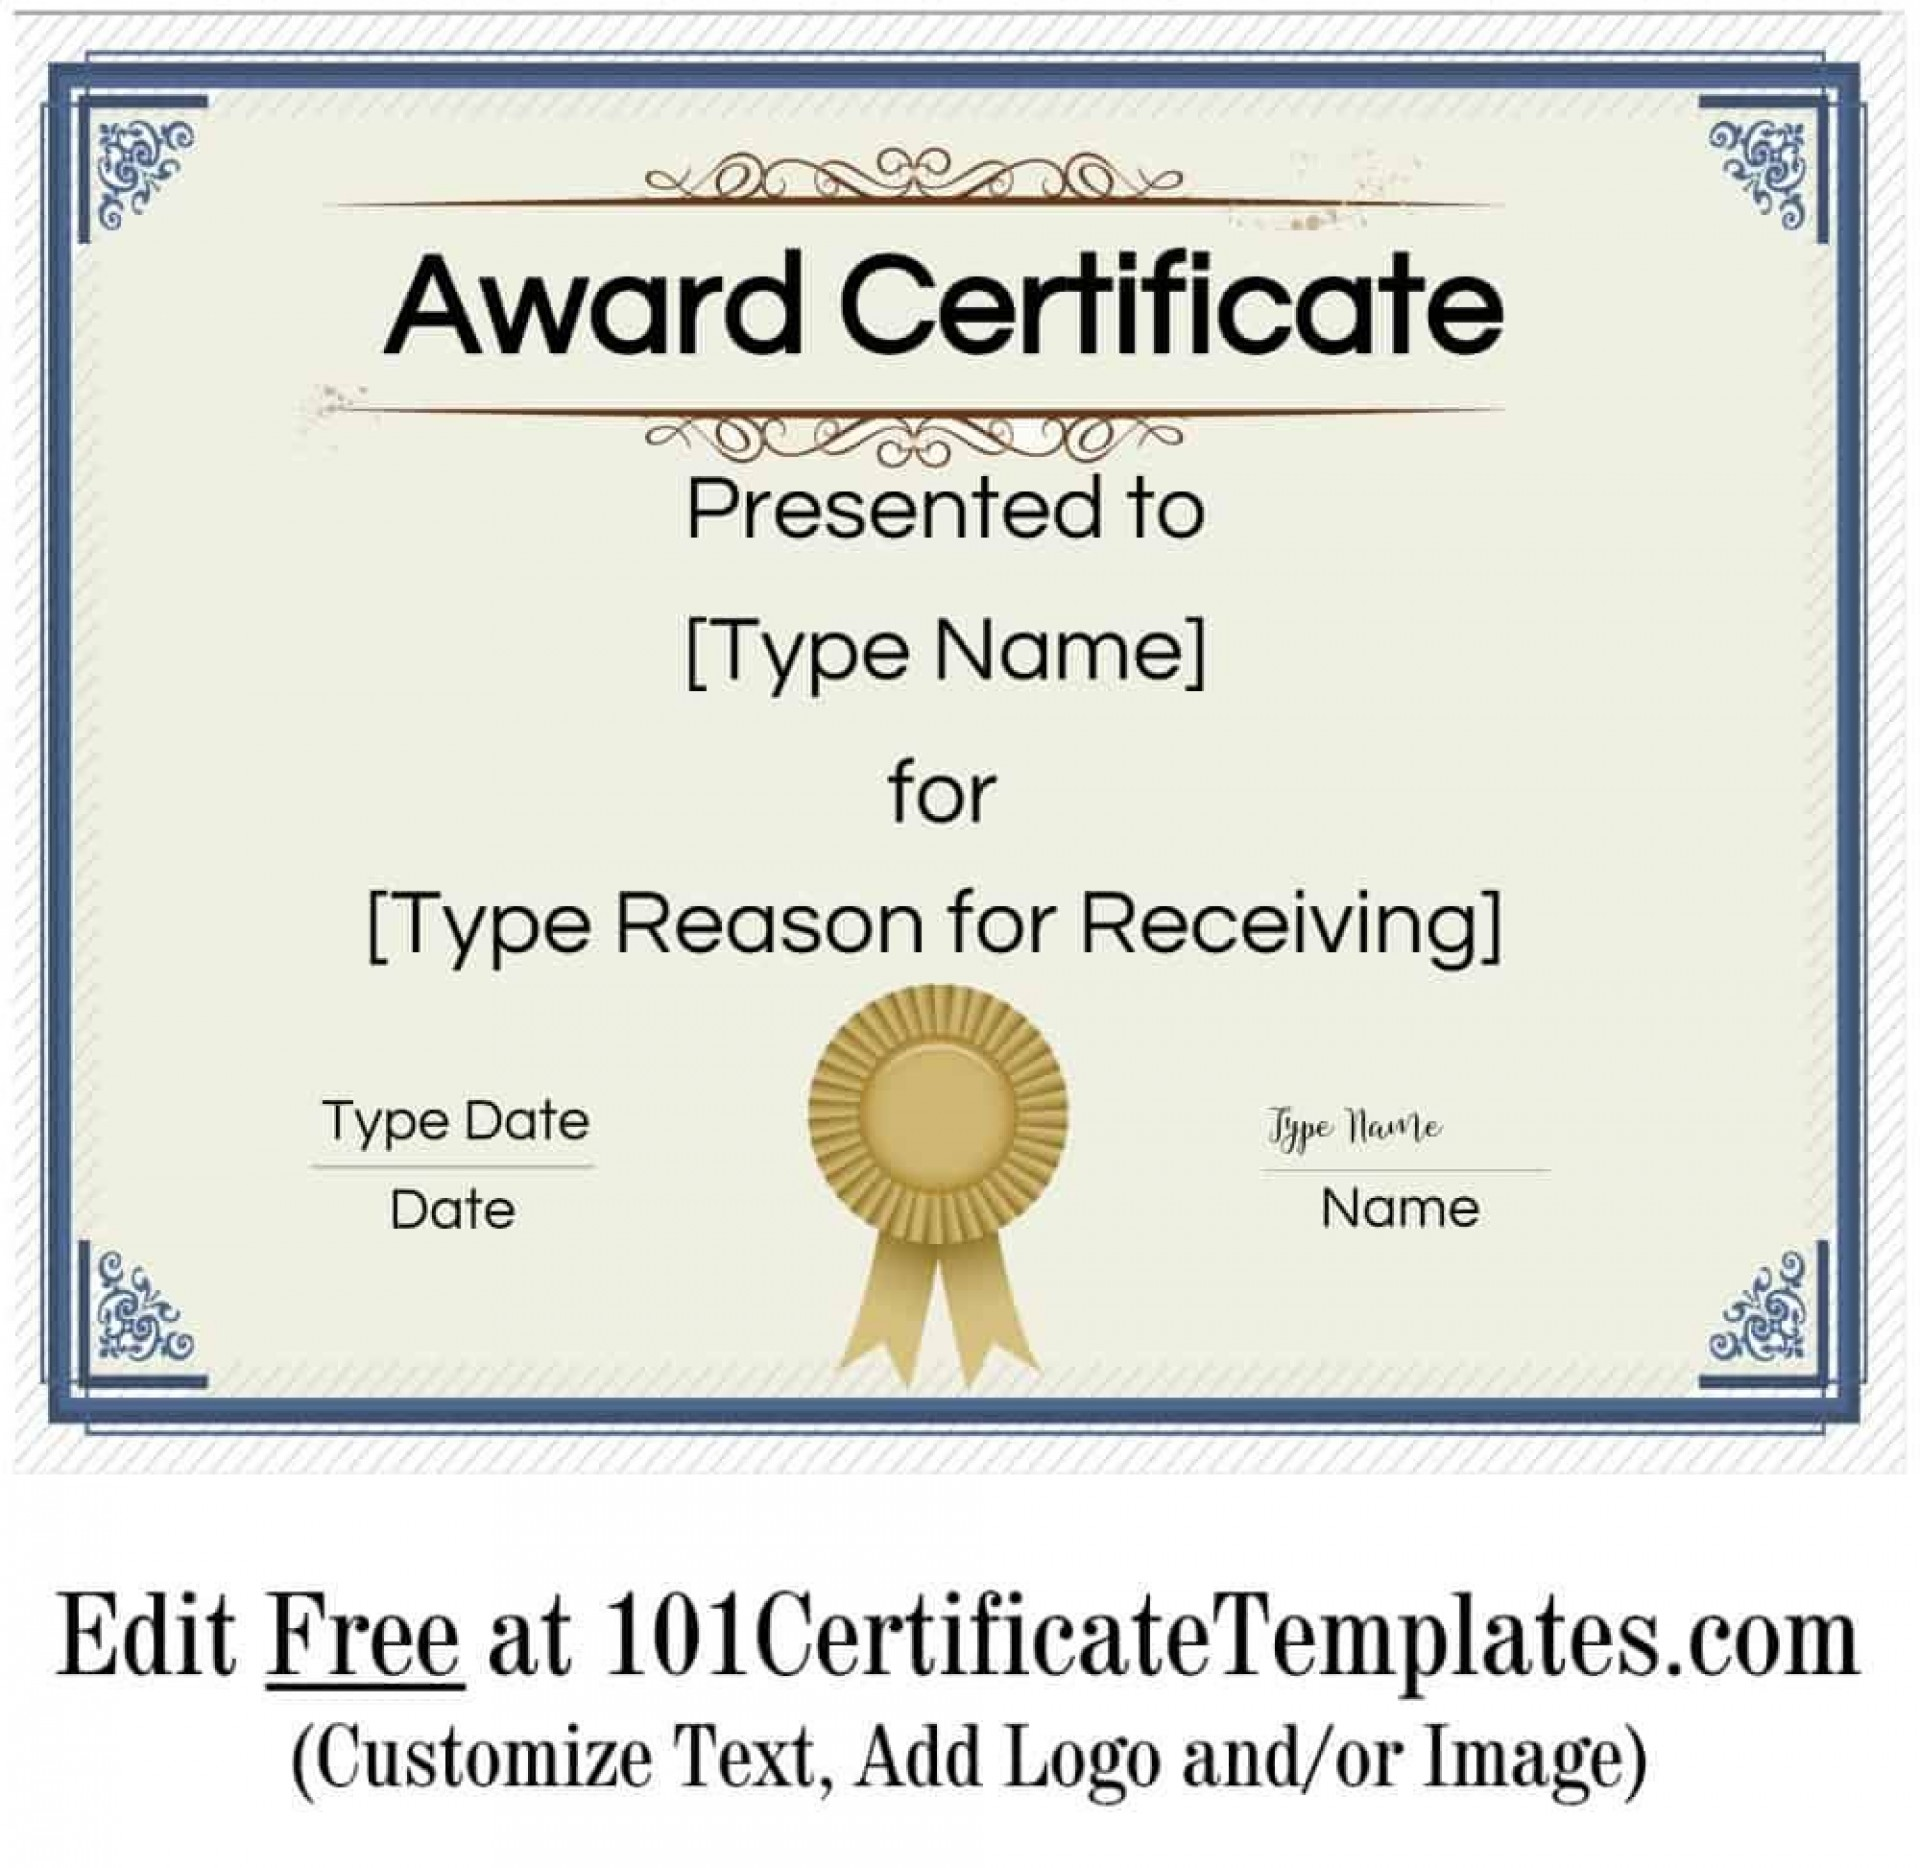 008 Singular Certificate Of Achievement Template Free Highest Quality  Award Download Word1920